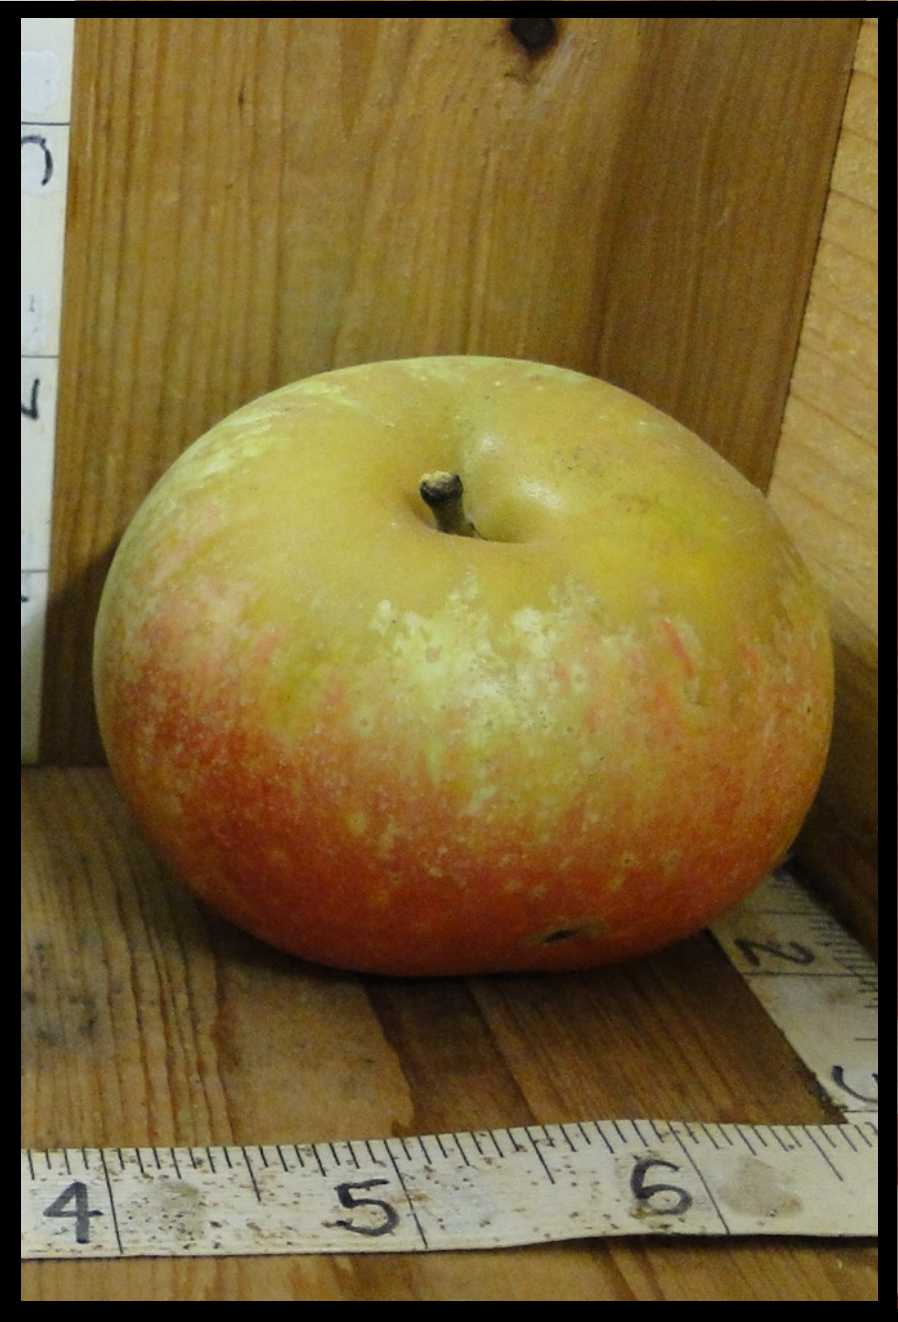 squat dull apple with a gradation of colors ranging from rough tan on the top third to yellow in the middle and light red on the bottom third of the fruit